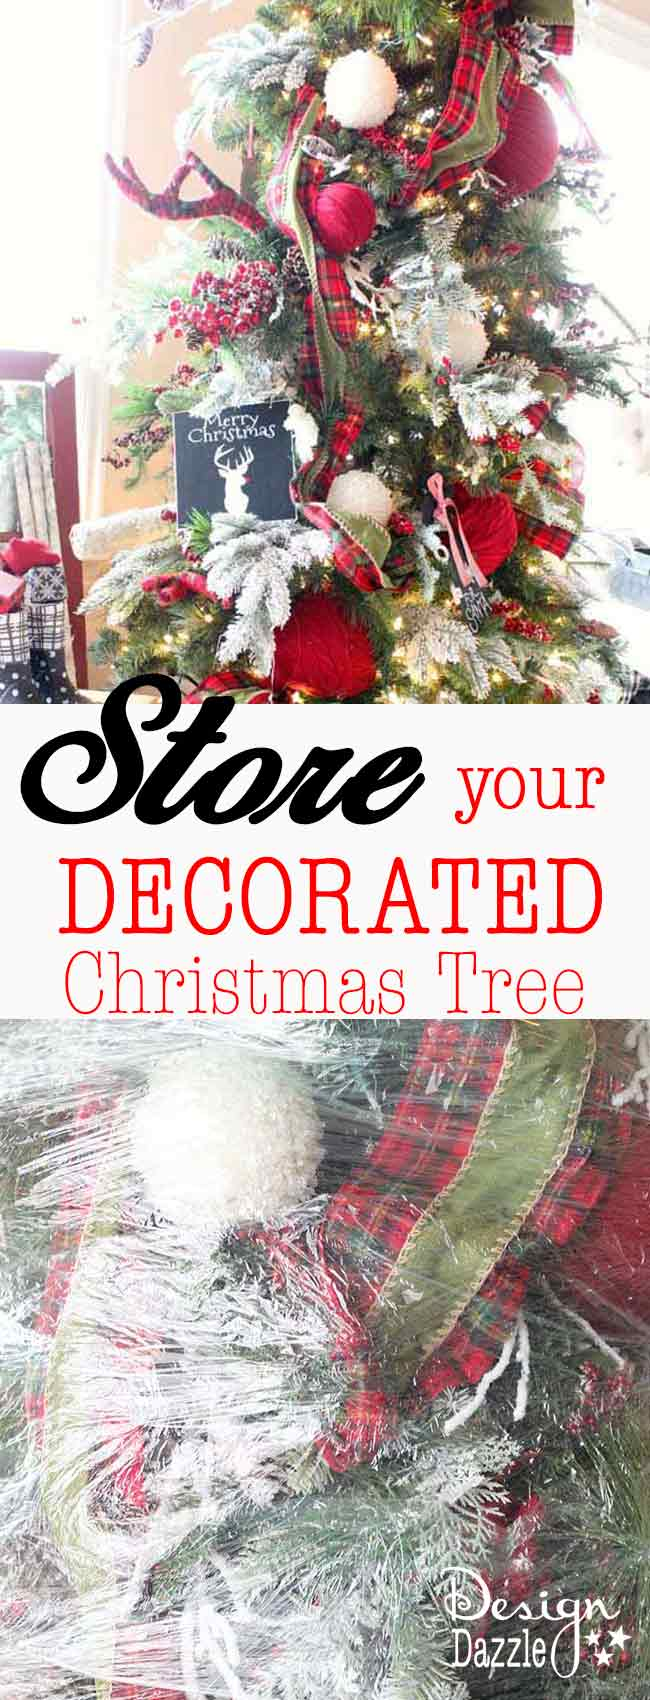 Store Your Decorated Christmas Tree